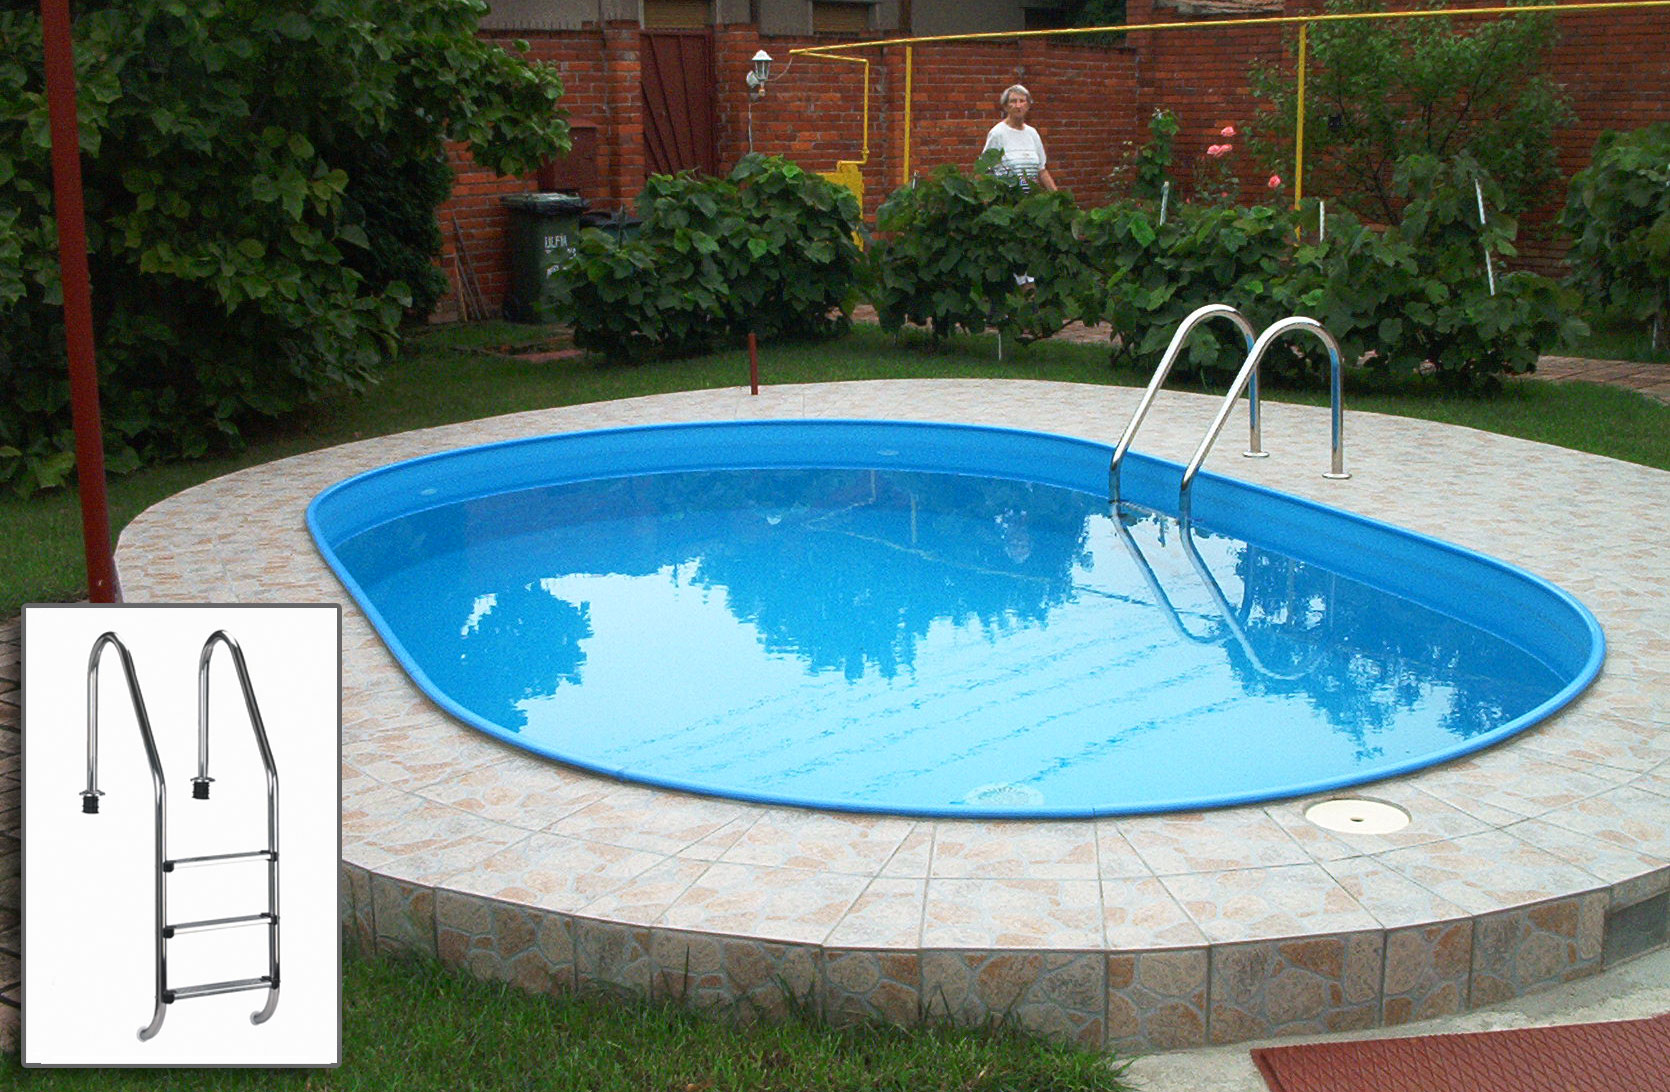 Pool schwimmbecken premium oval set mit sandfilter 7x3 for Stahl pool oval